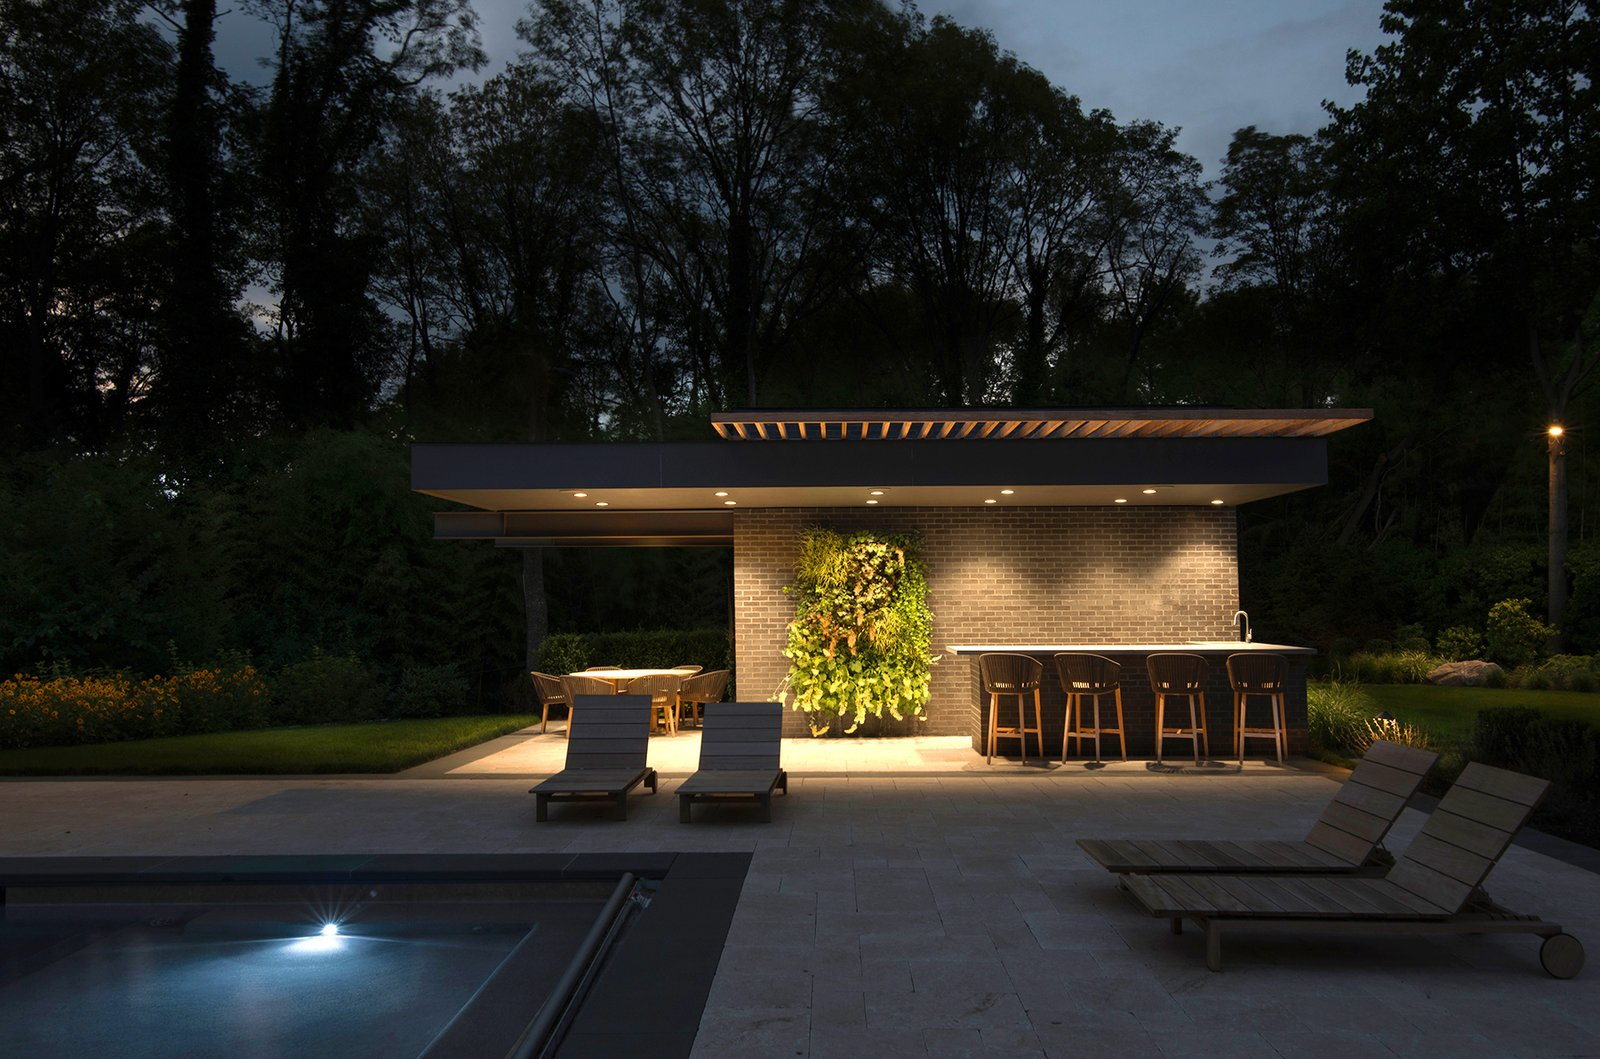 Lighting at UP Studio's Free Float Pool House creates a dramatic setting for entertaining at night.